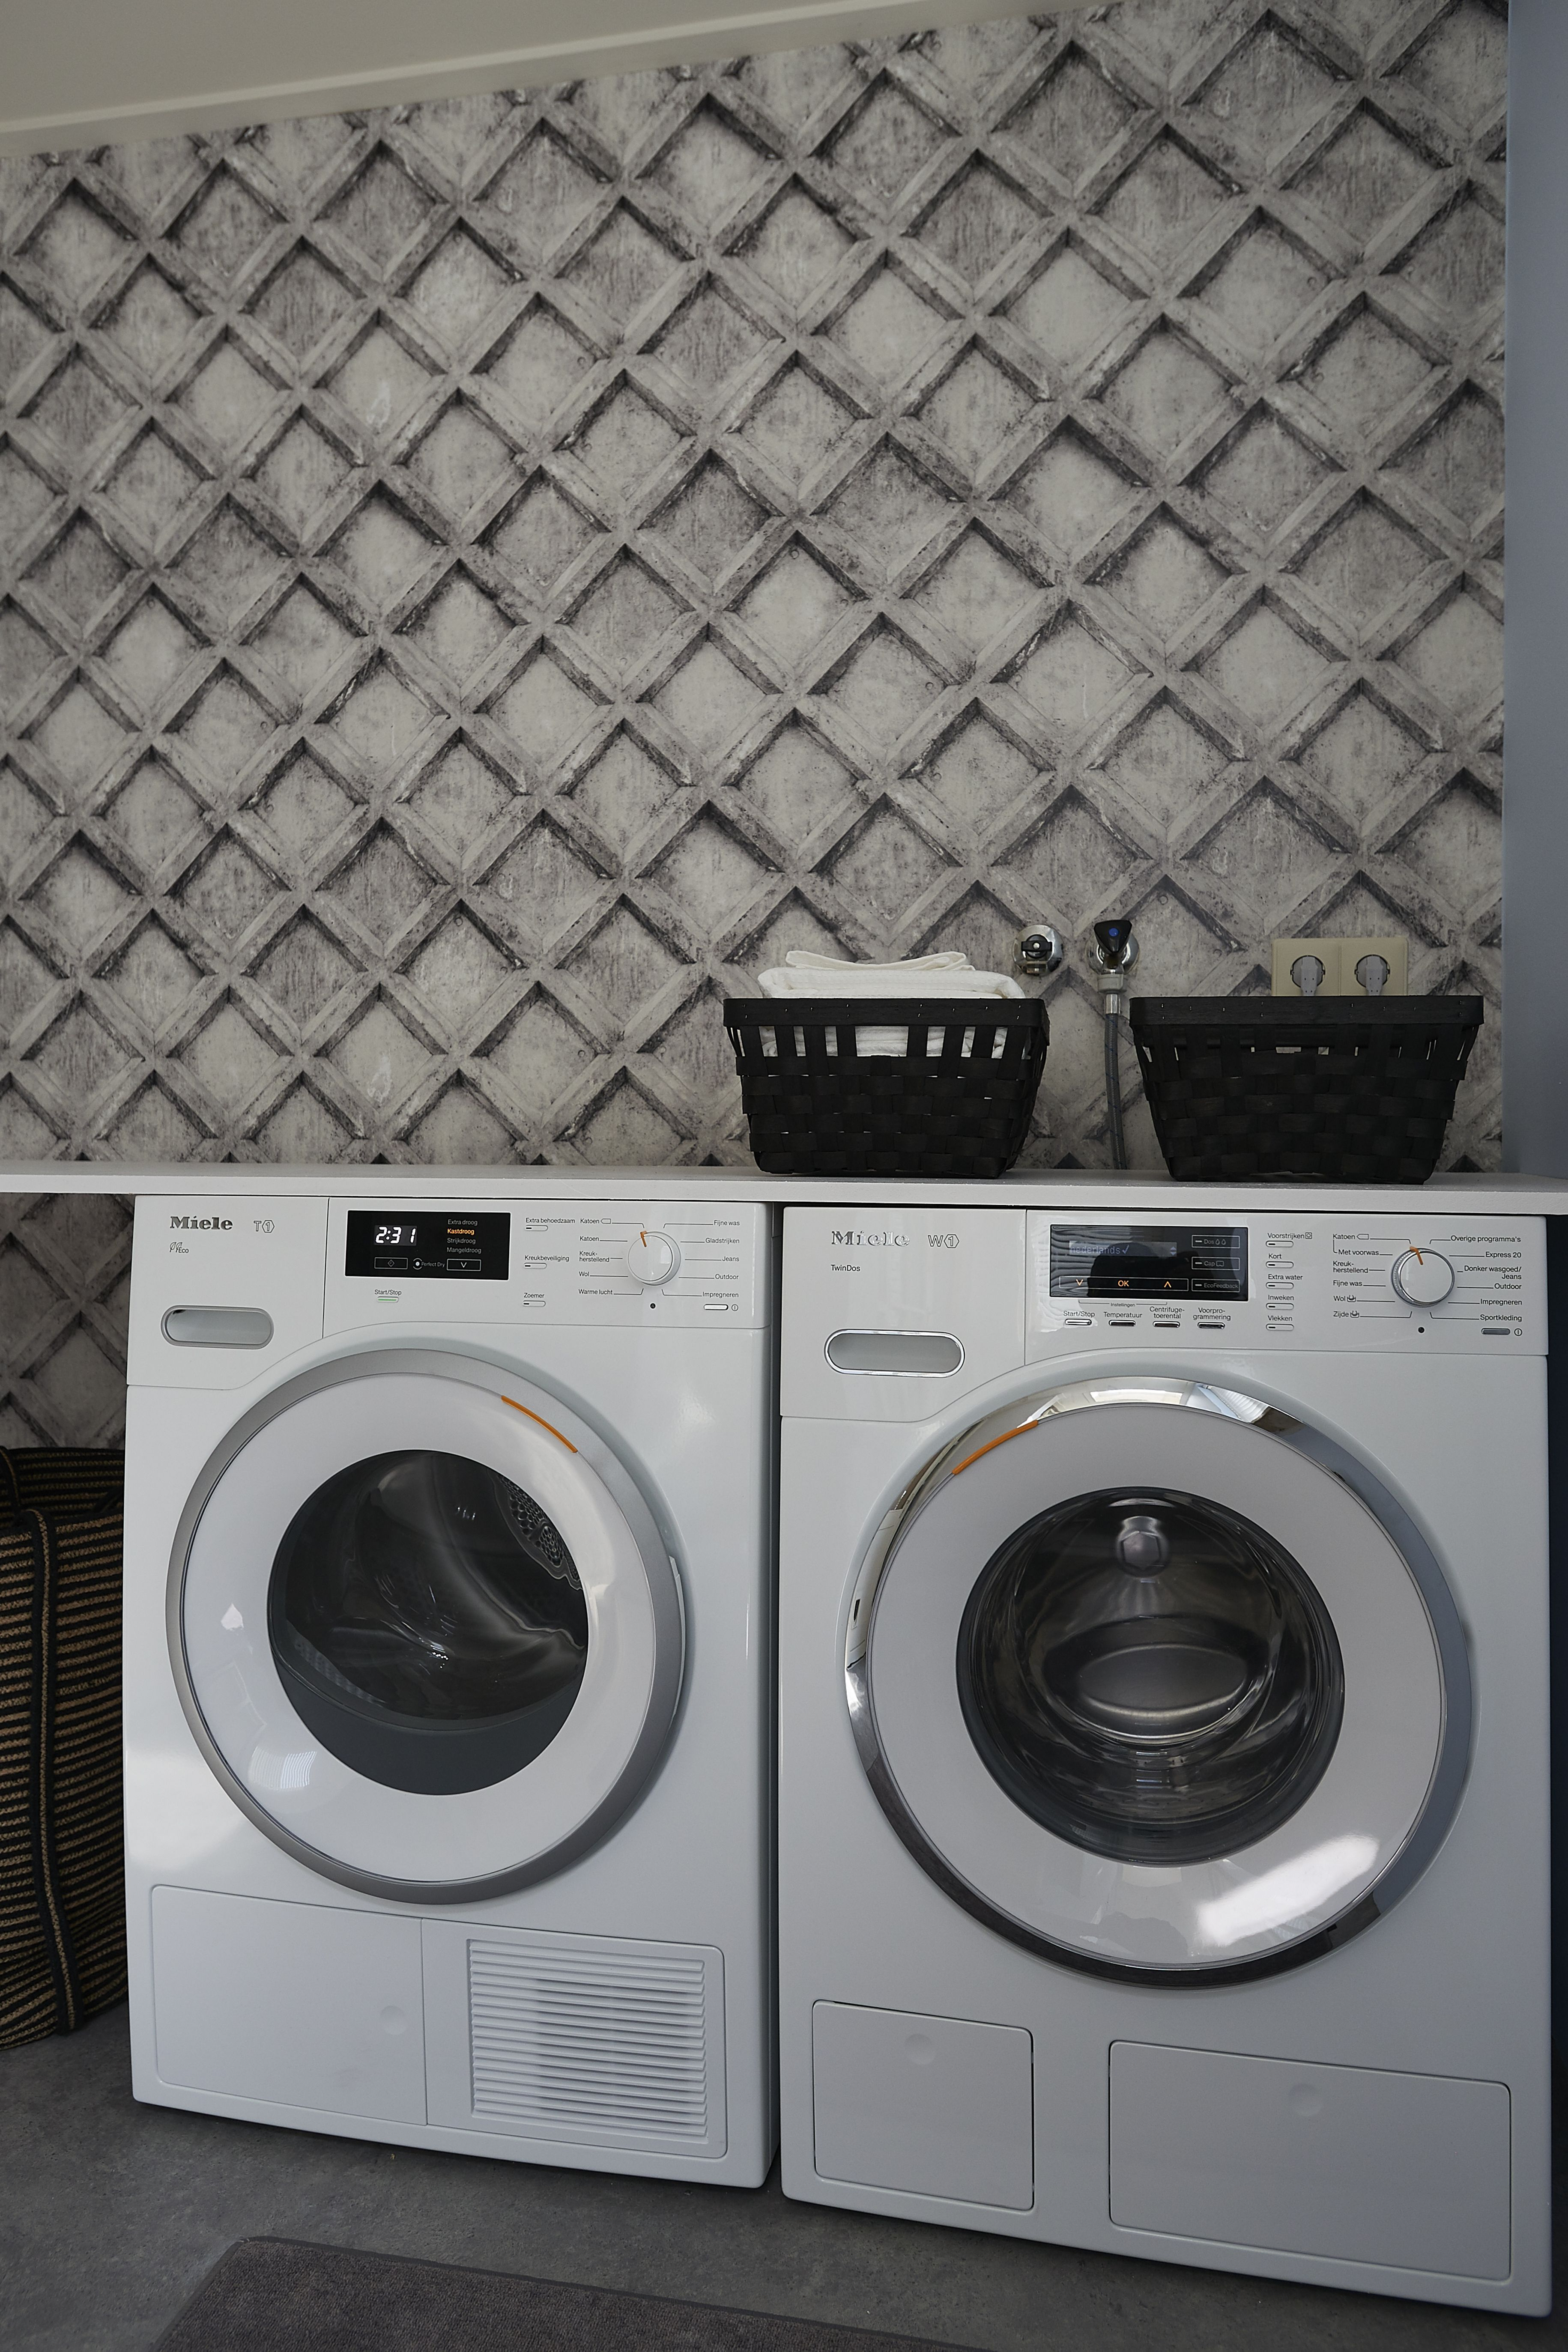 mesh ironing magnetic pad heat item clothes mayitr and washer dryer blanket cover mat board resistant press mats laundry